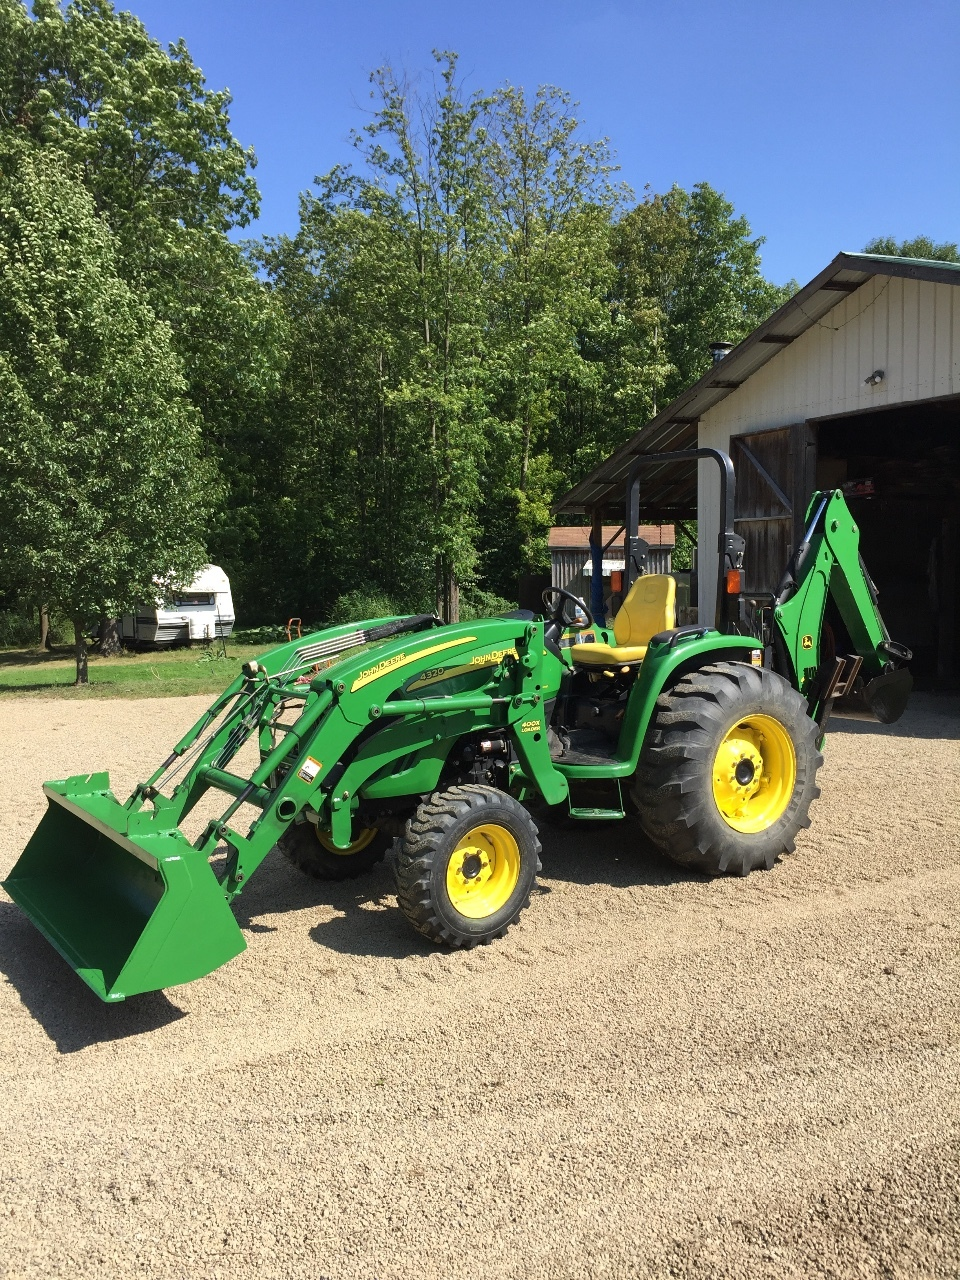 Standard Compact Tractors Farming Equipment For Sale